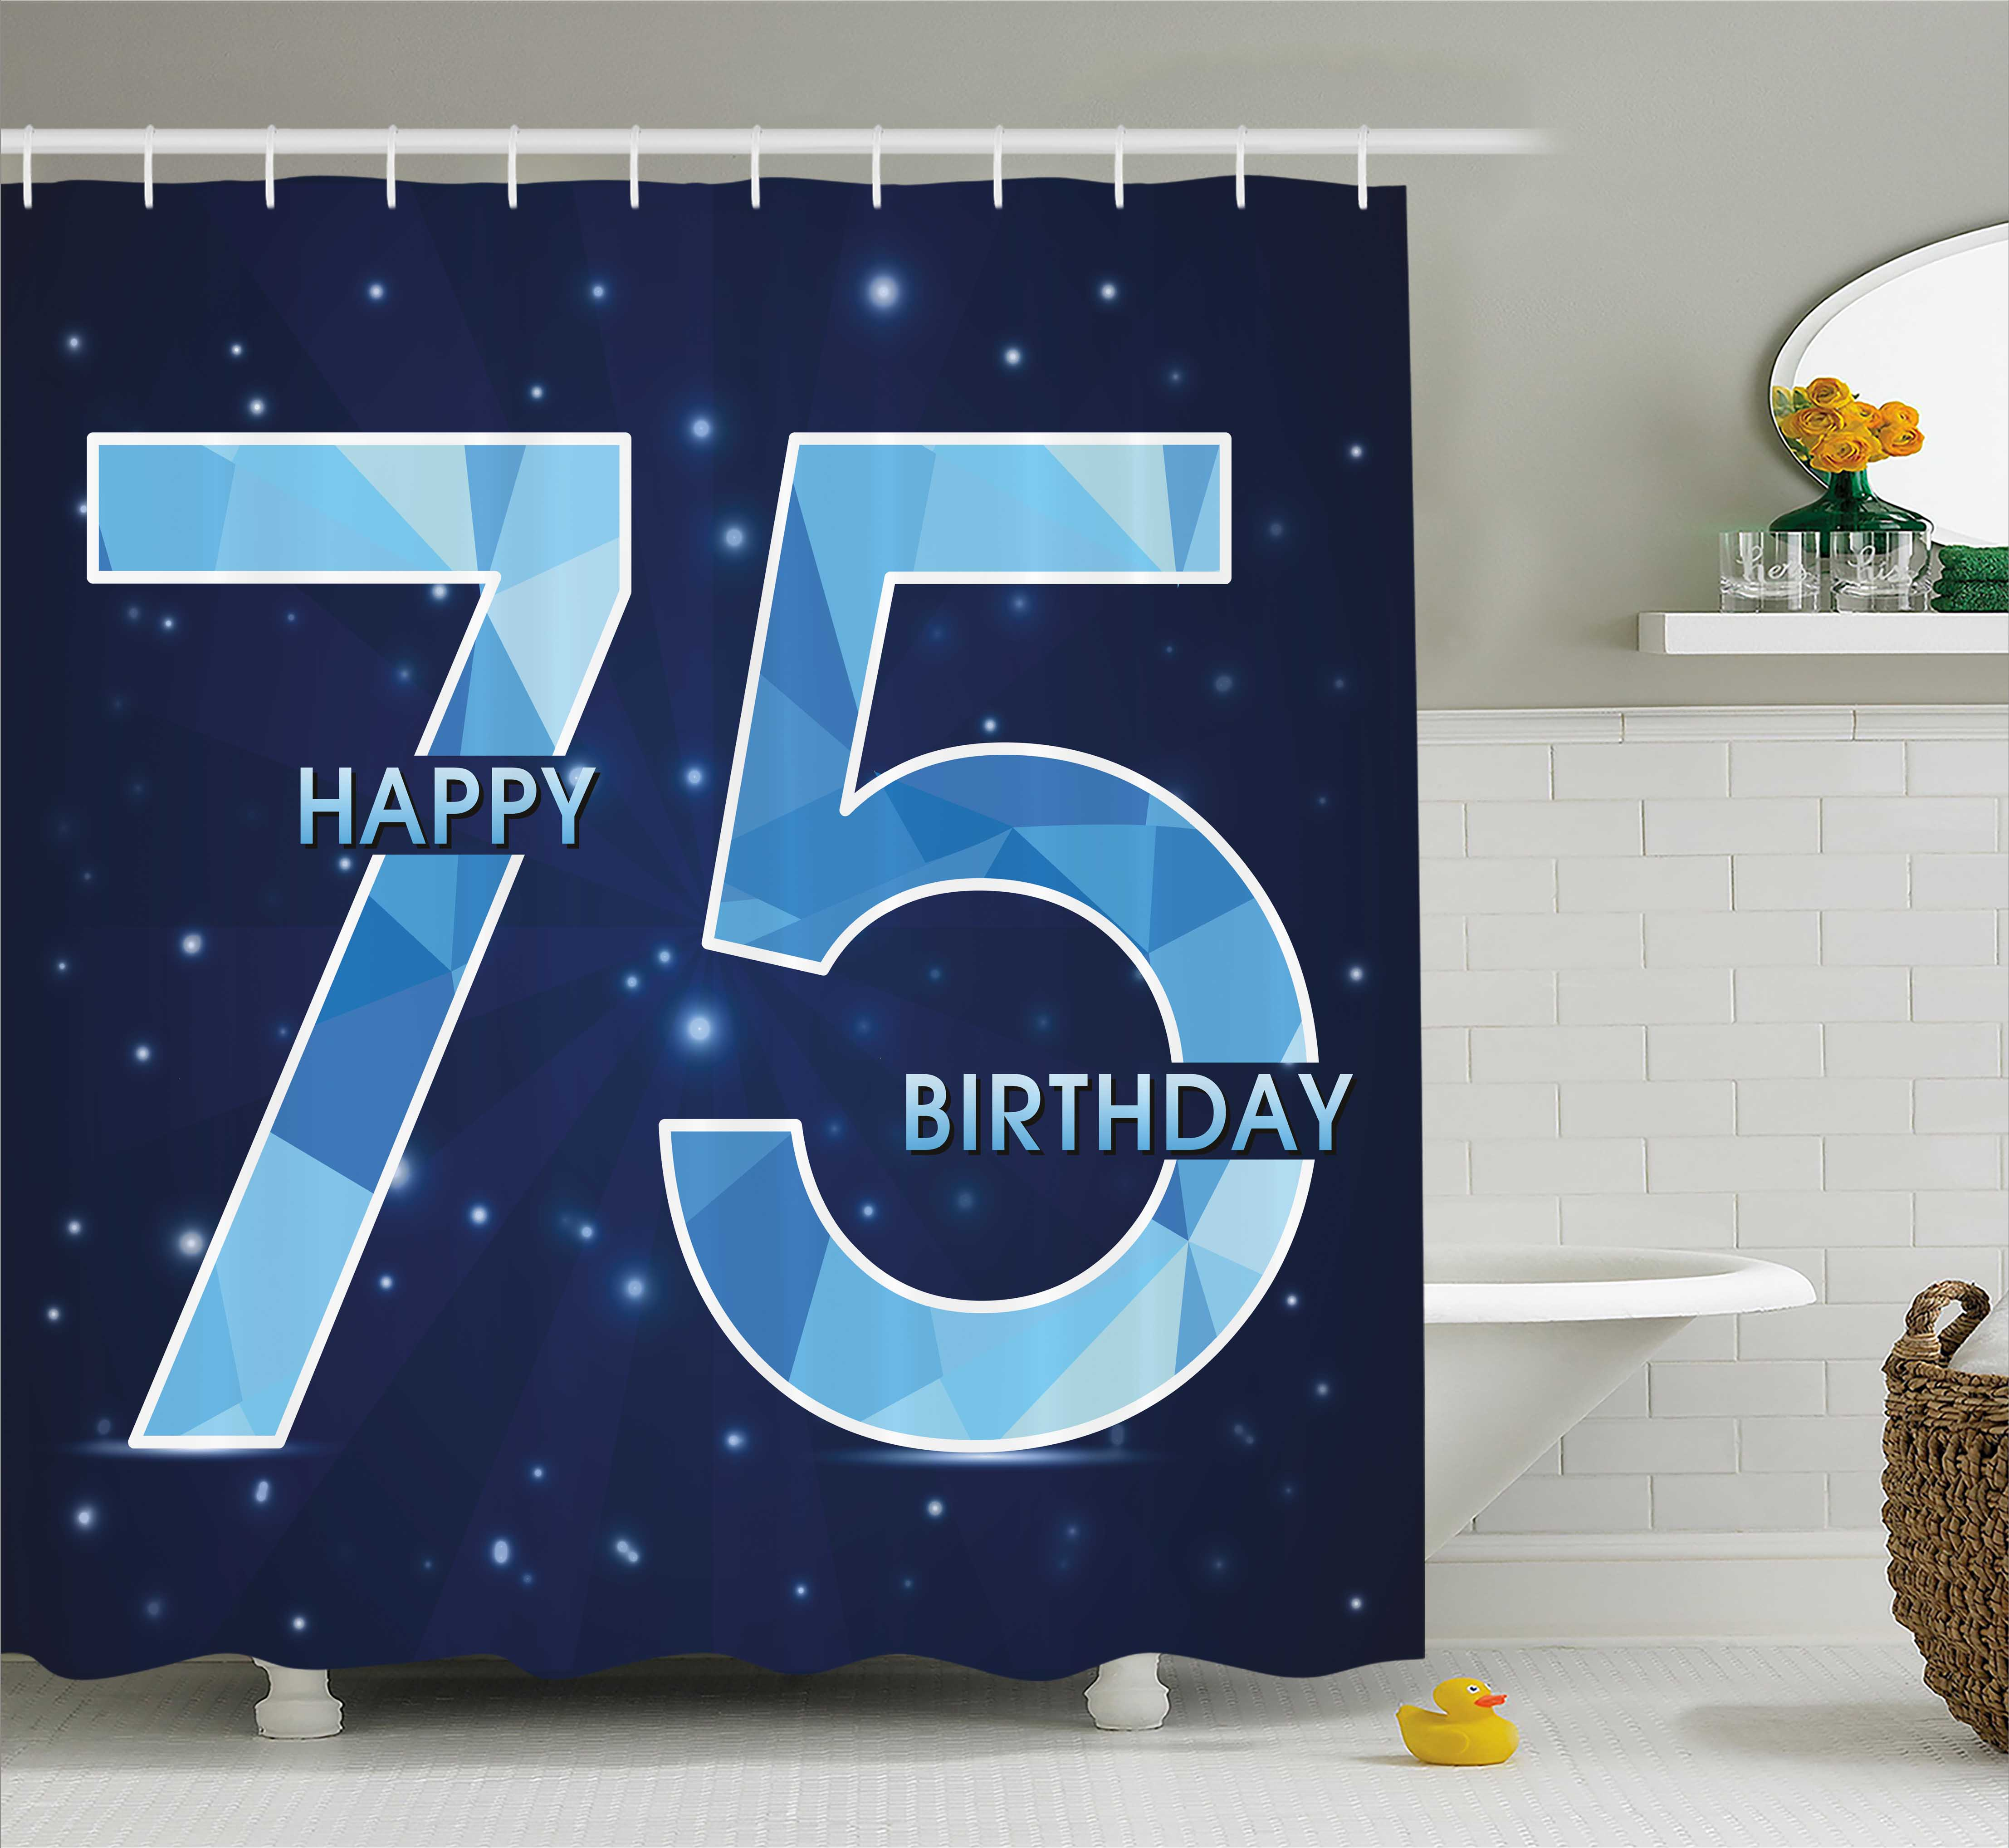 75th Birthday Decorations Shower Curtain Geometric Abstract Design